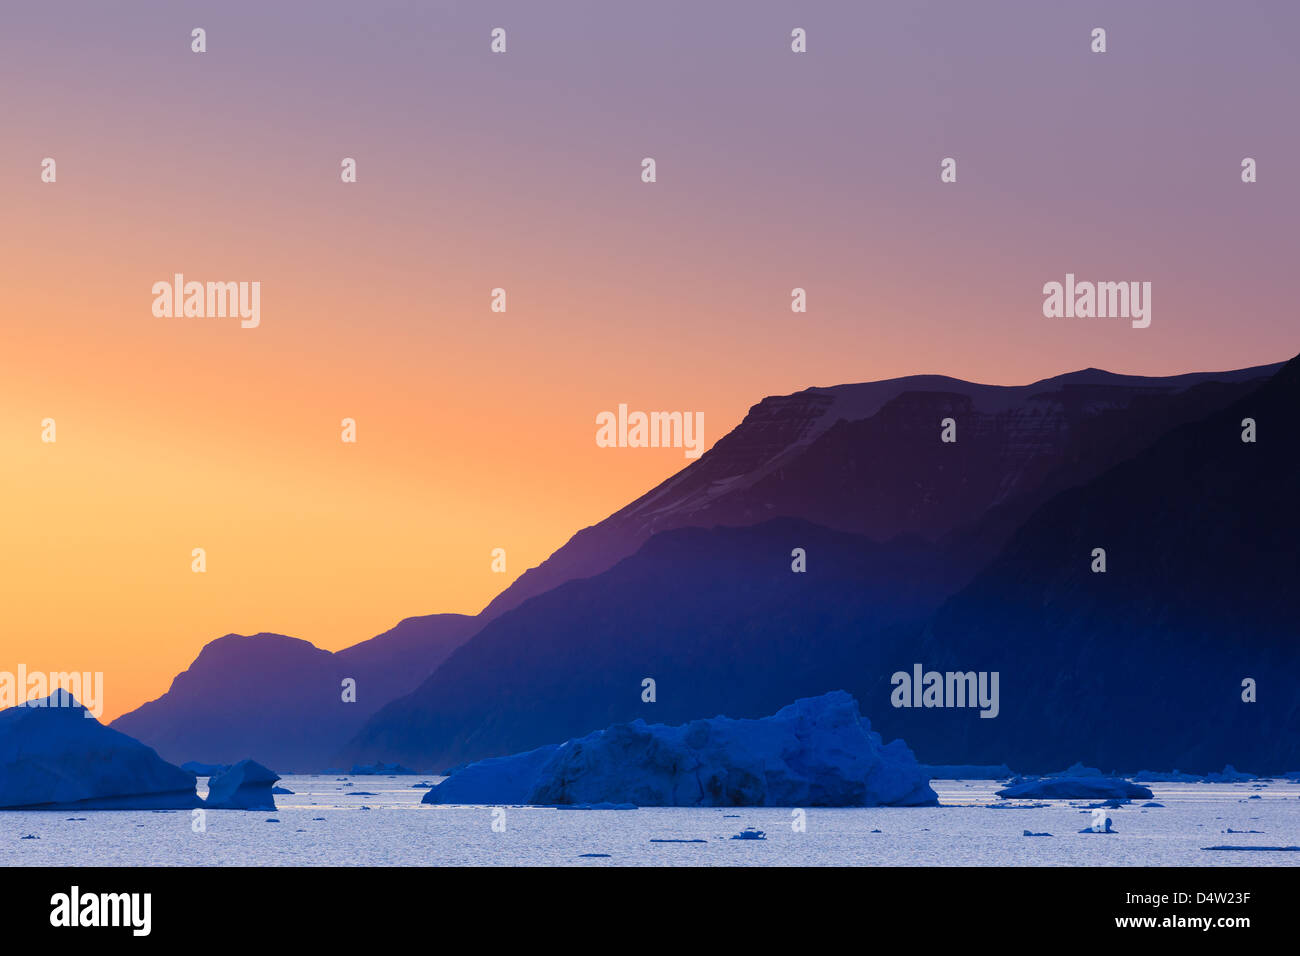 Icebergs at sunrise in the Rodefjord, Scoresbysund, Greenland - Stock Image